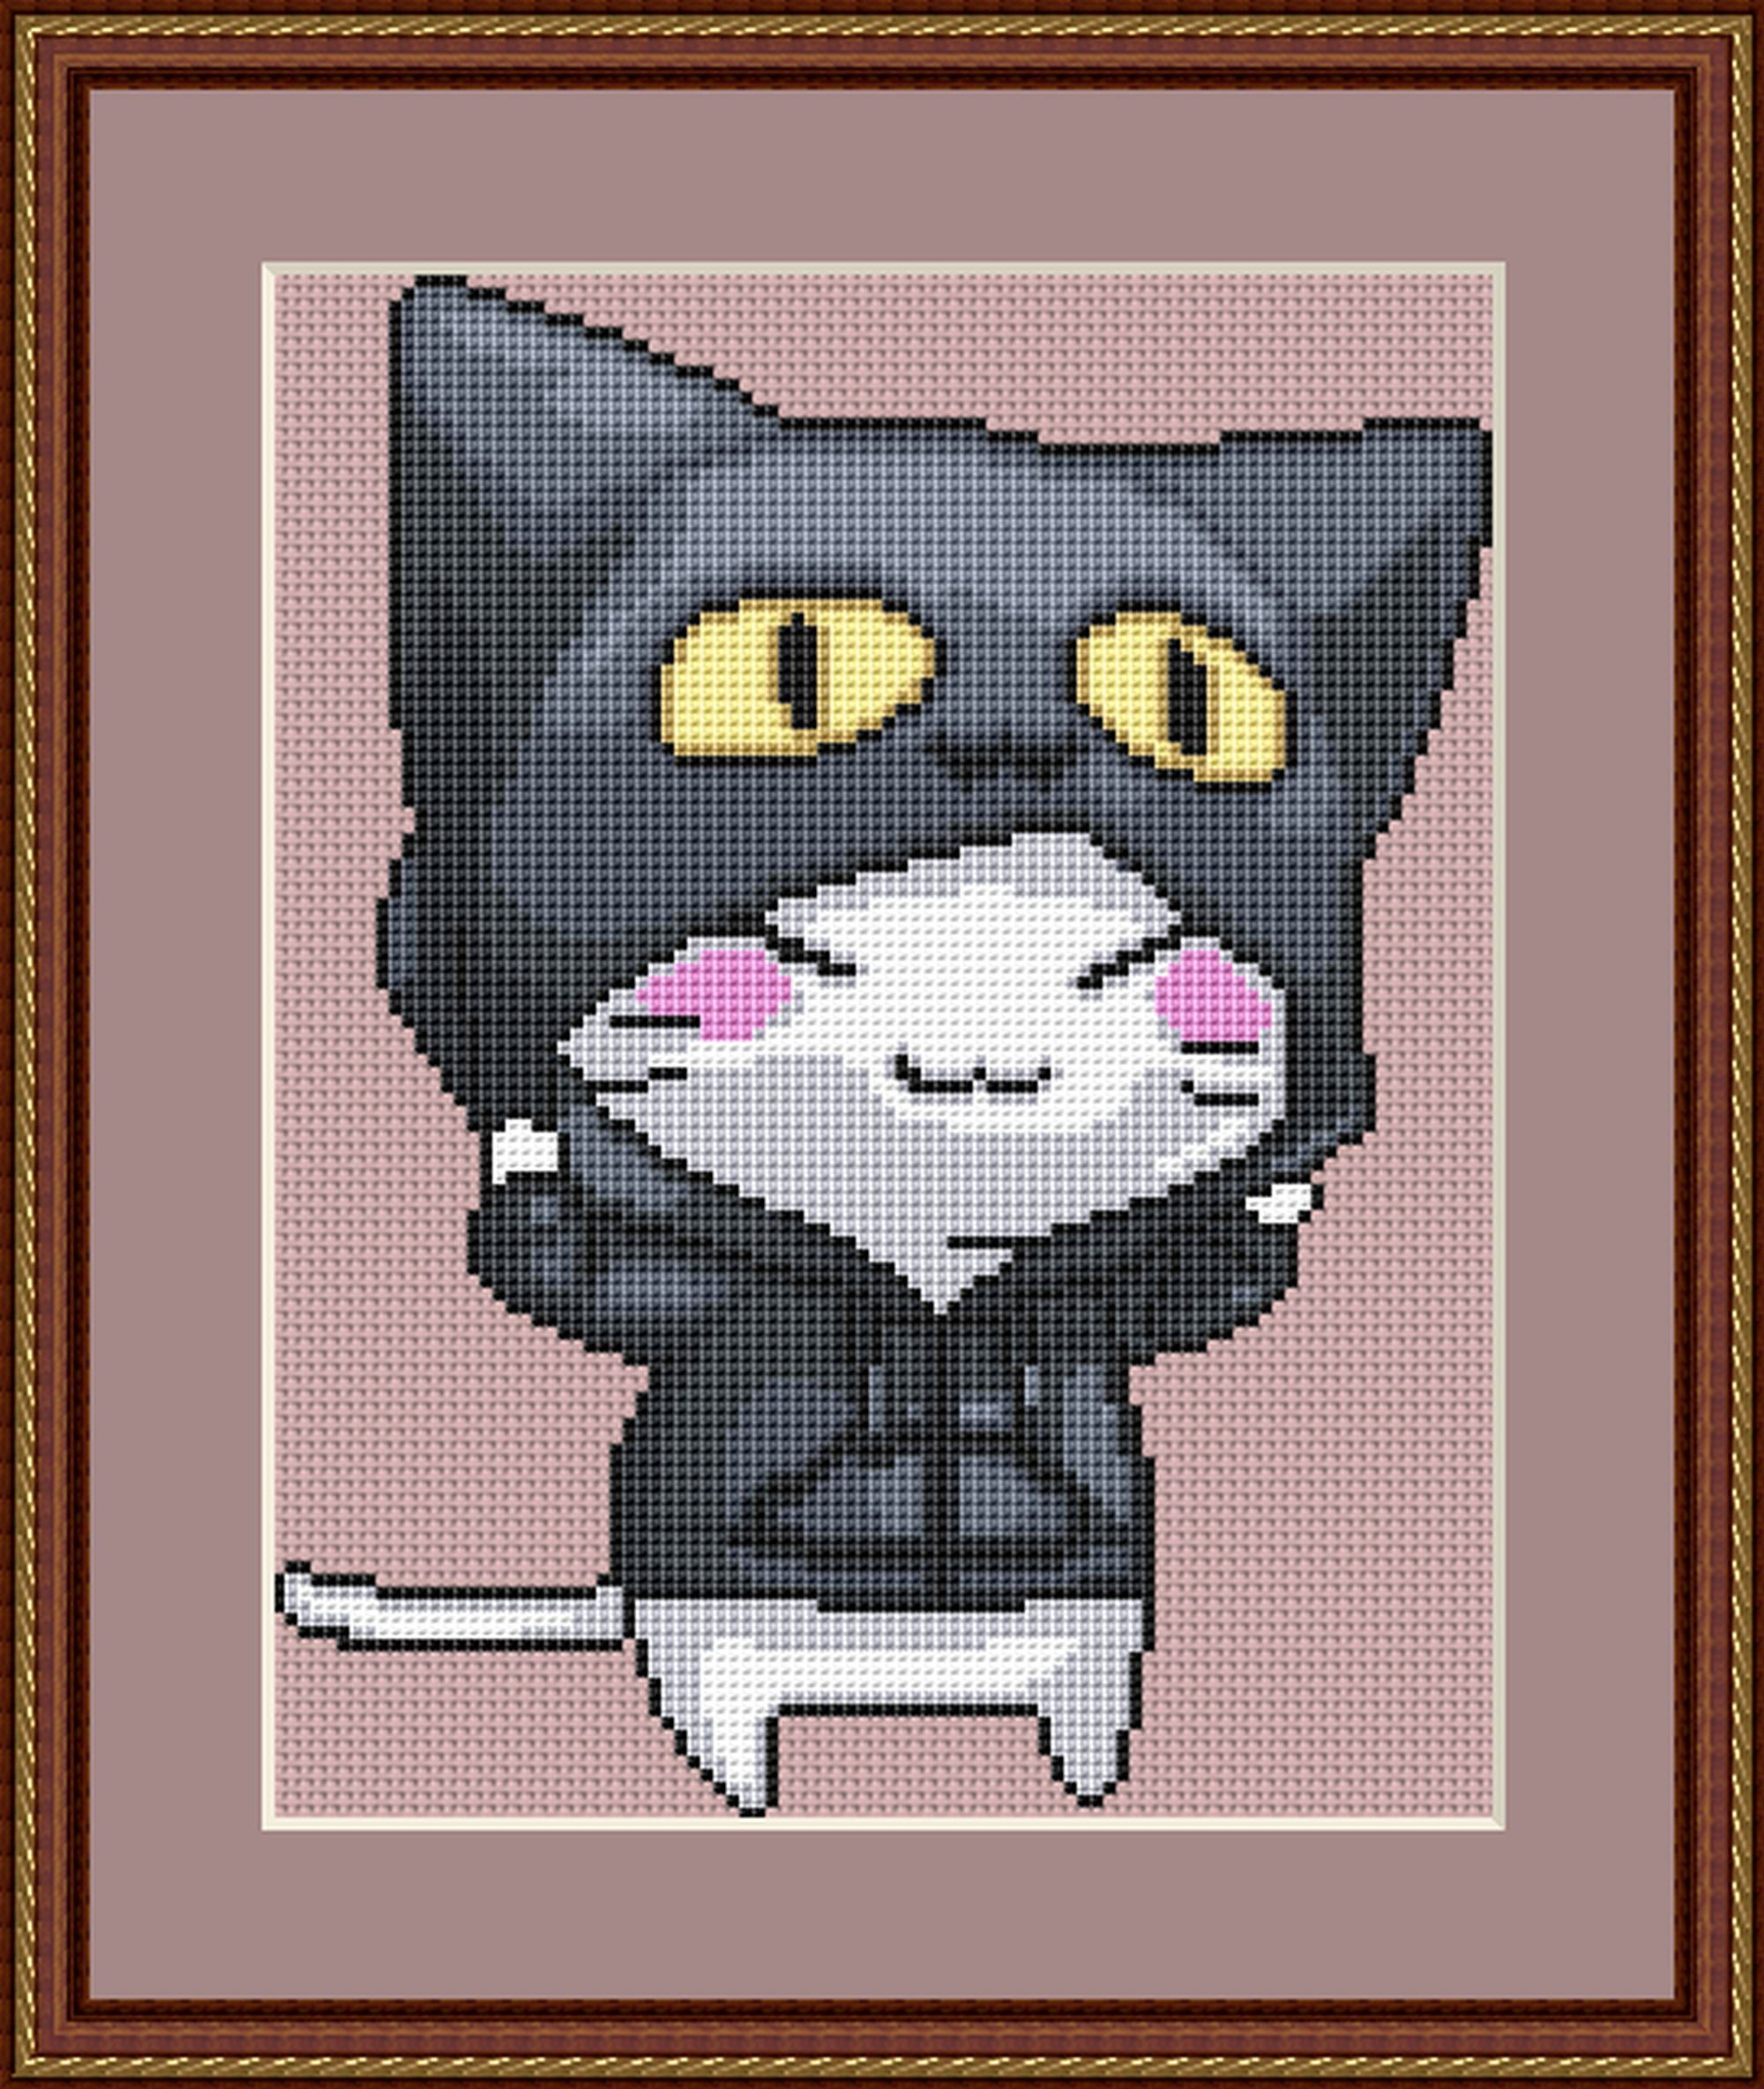 japanese anime embroidery designs